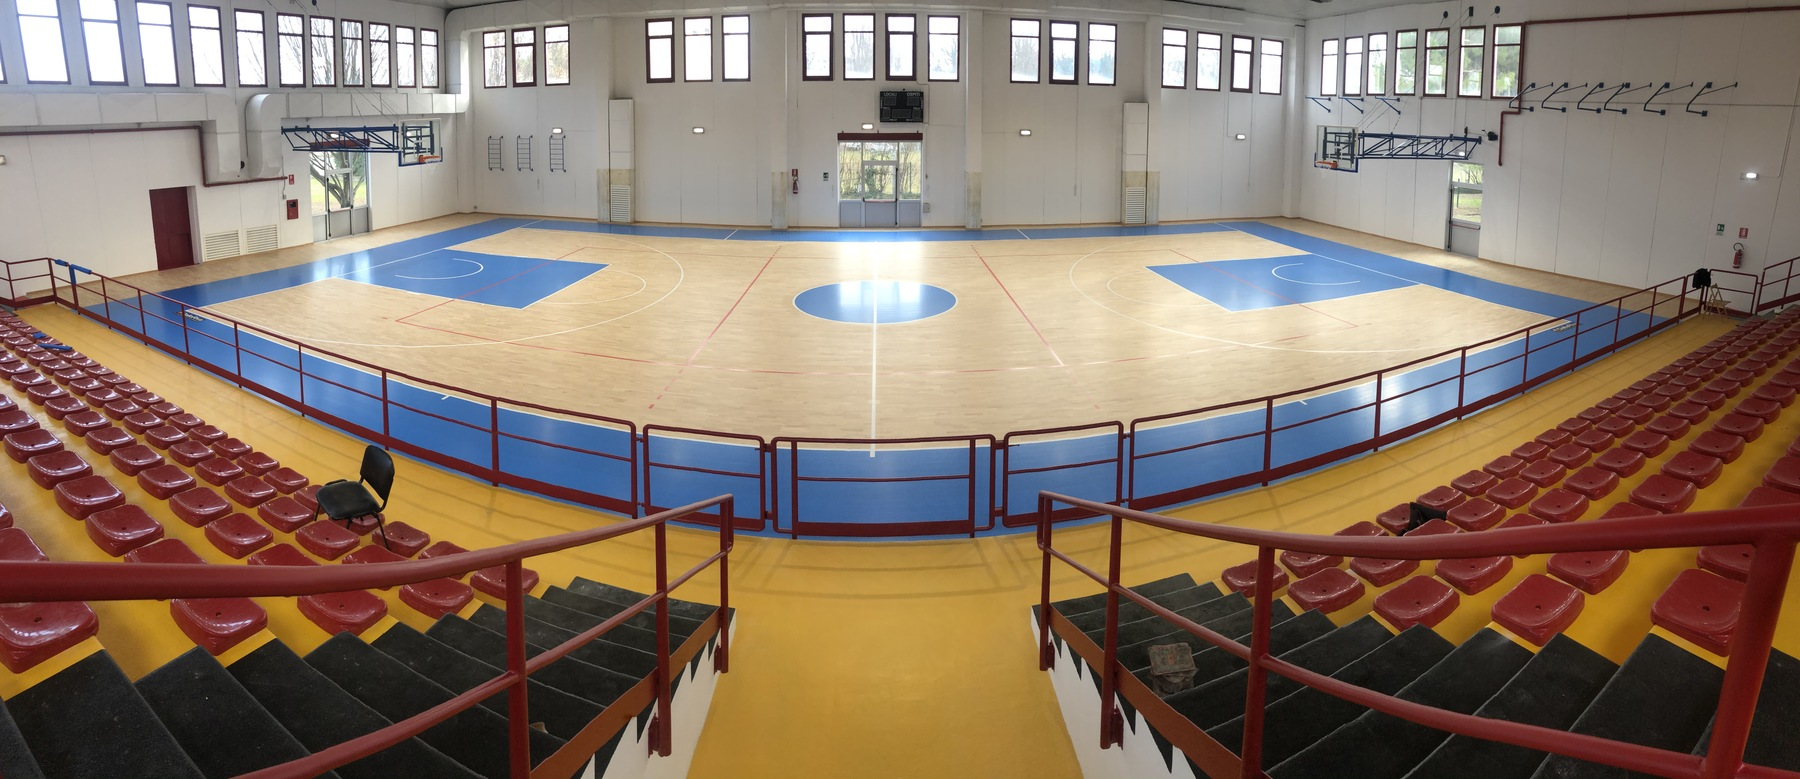 From a school gym to a real sports hall